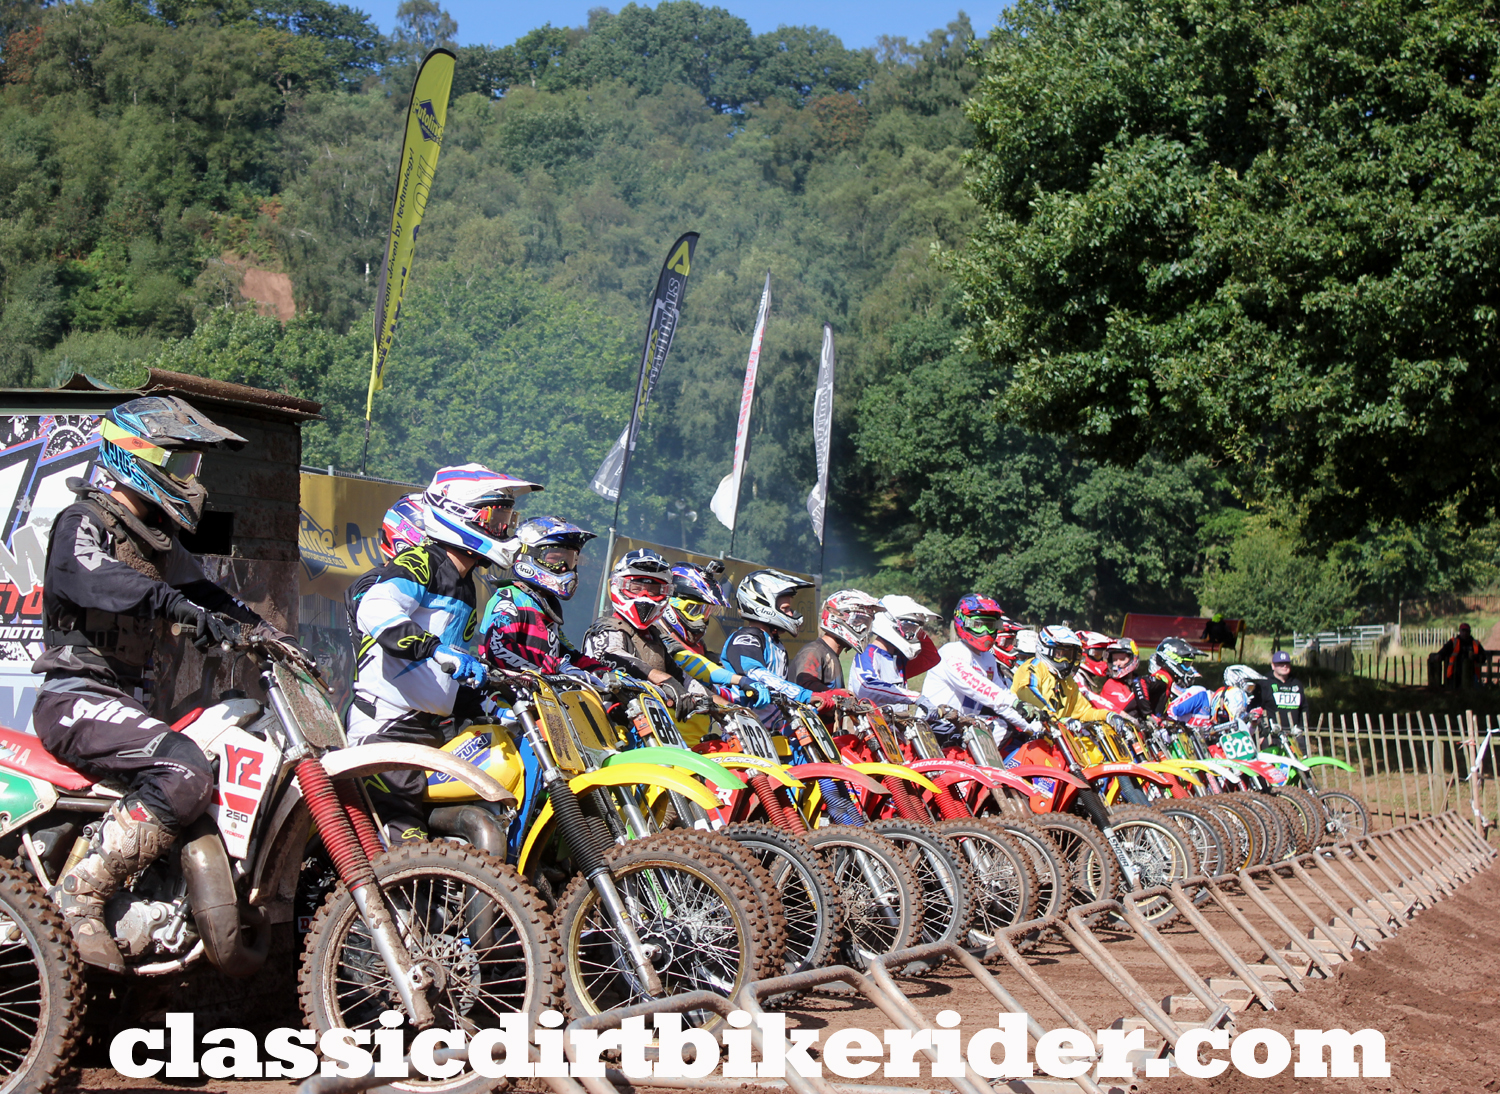 2016-hawkstone-park-festival-of-legends-classicdirtbikerider-com-photo-by-mr-j-16